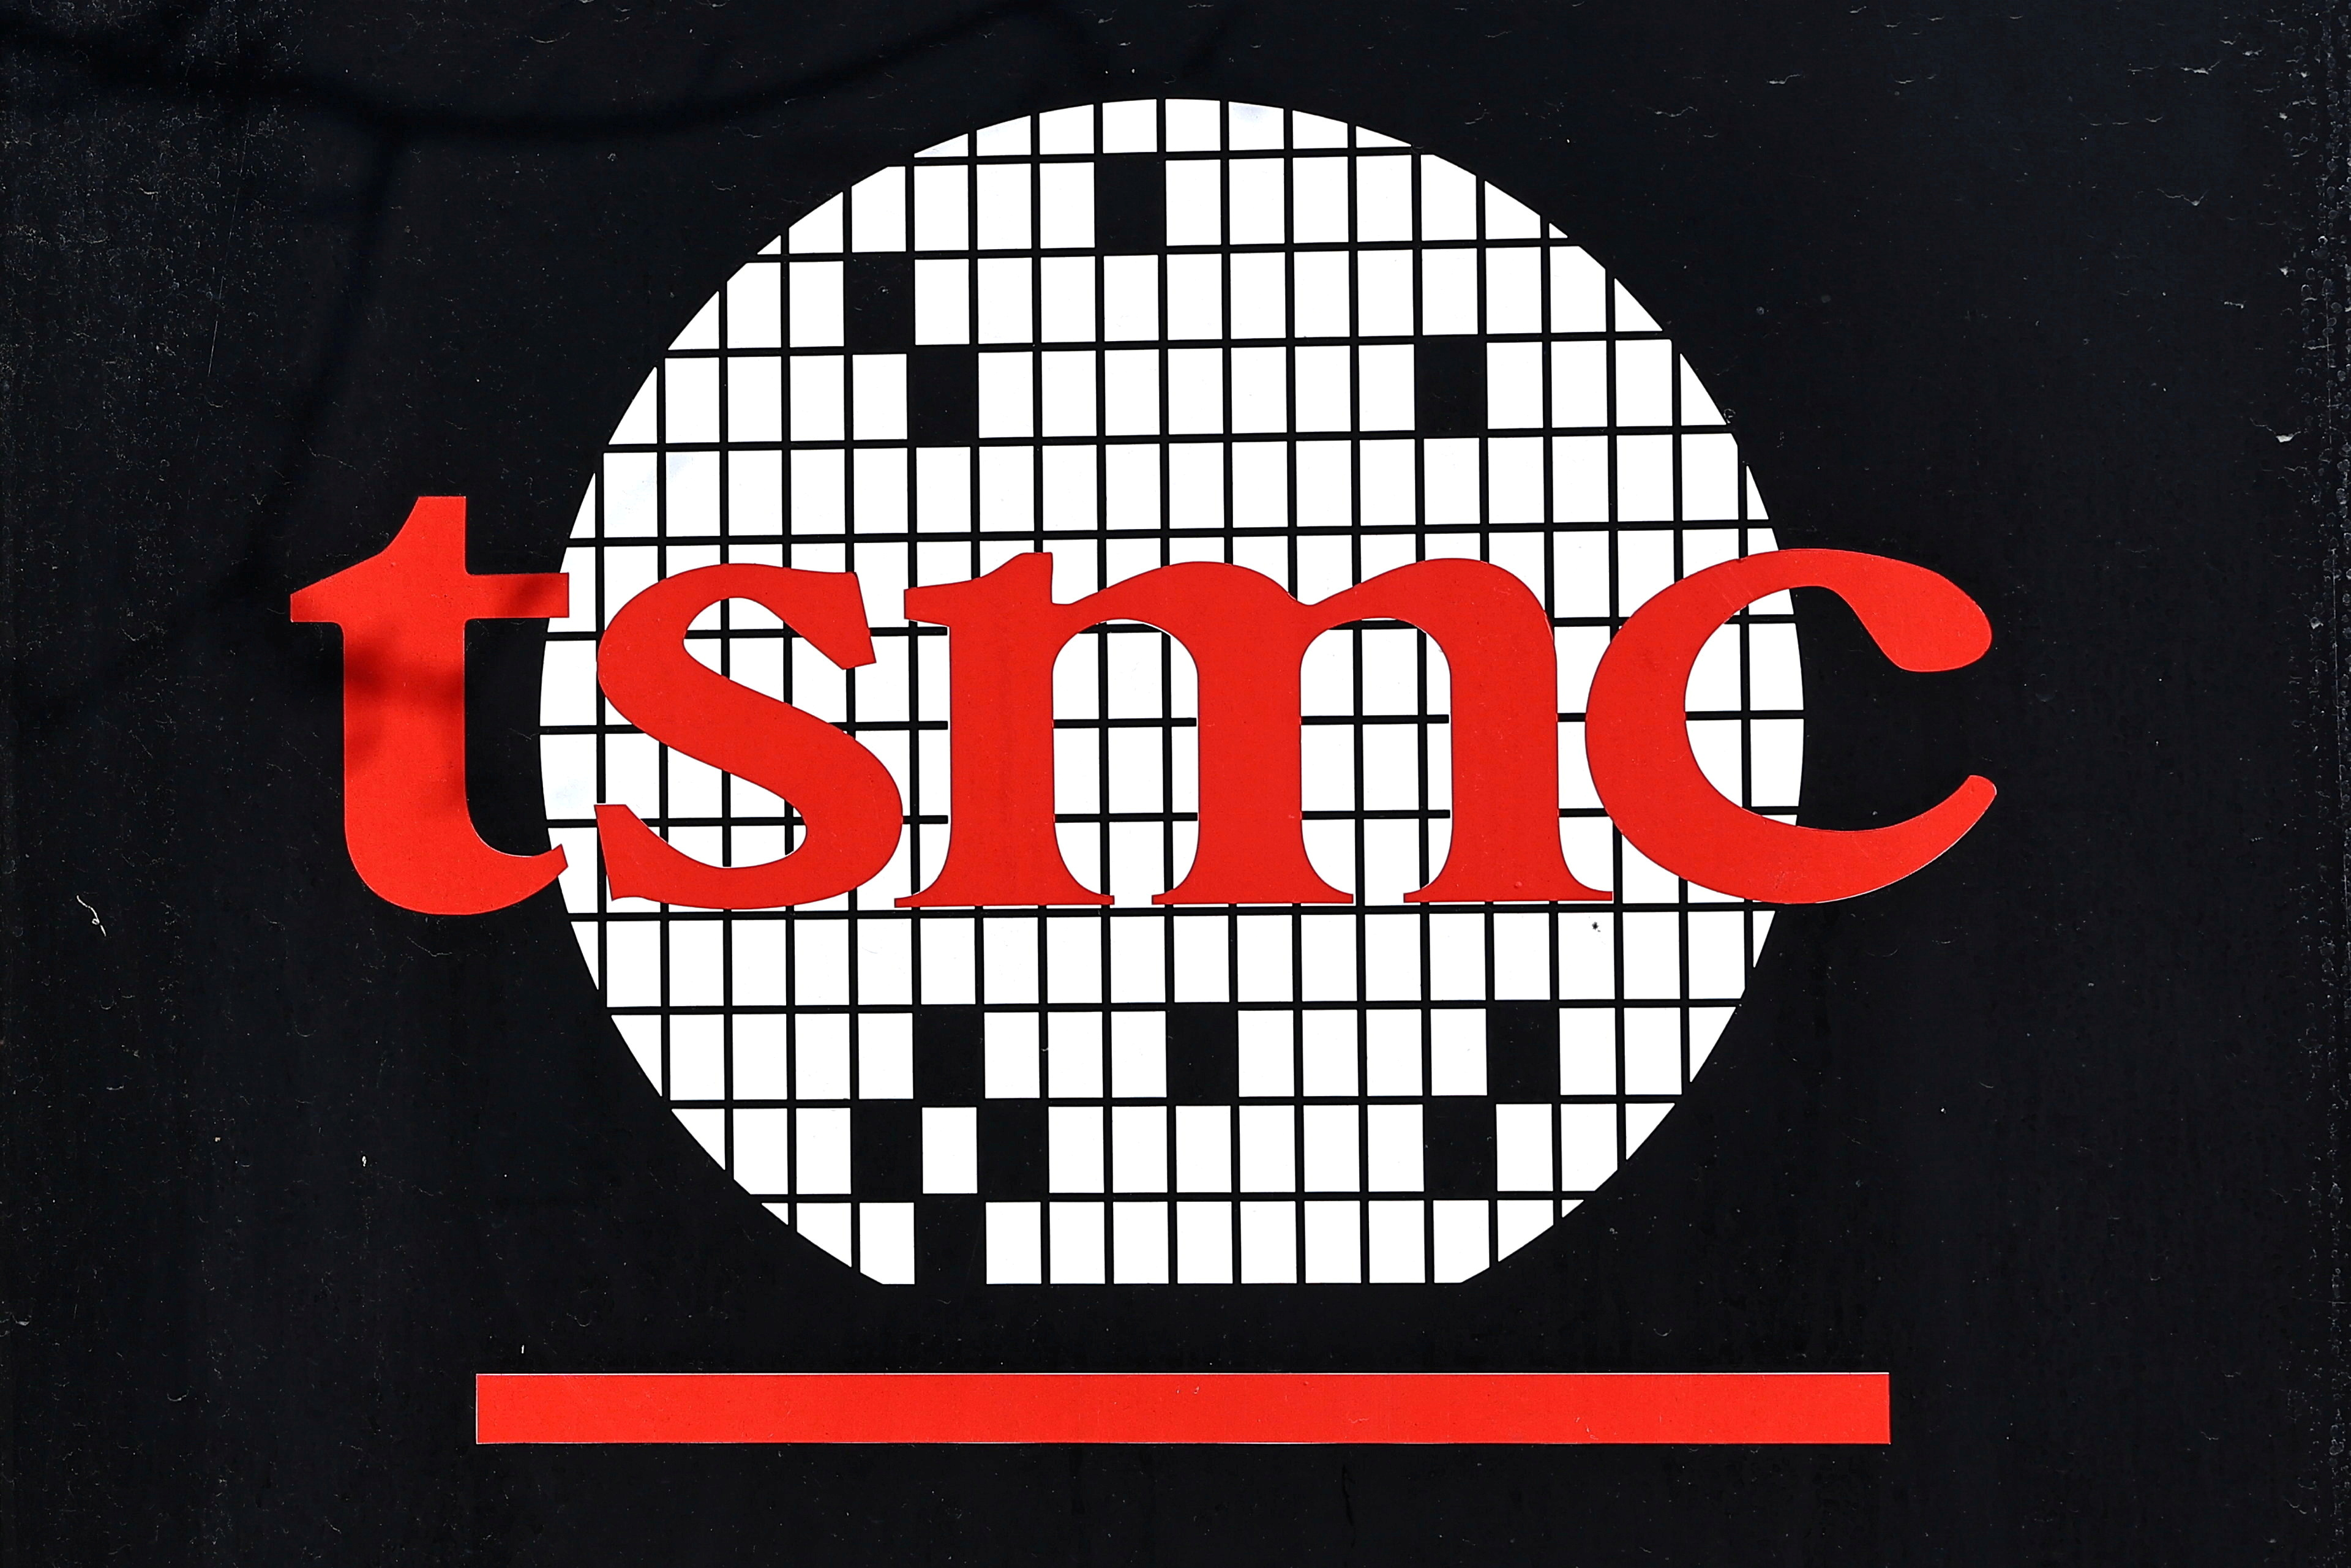 The logo of Taiwan Semiconductor Manufacturing Co (TSMC) is pictured at its headquarters, in Hsinchu, Taiwan, January 19, 2021. REUTERS/Ann Wang